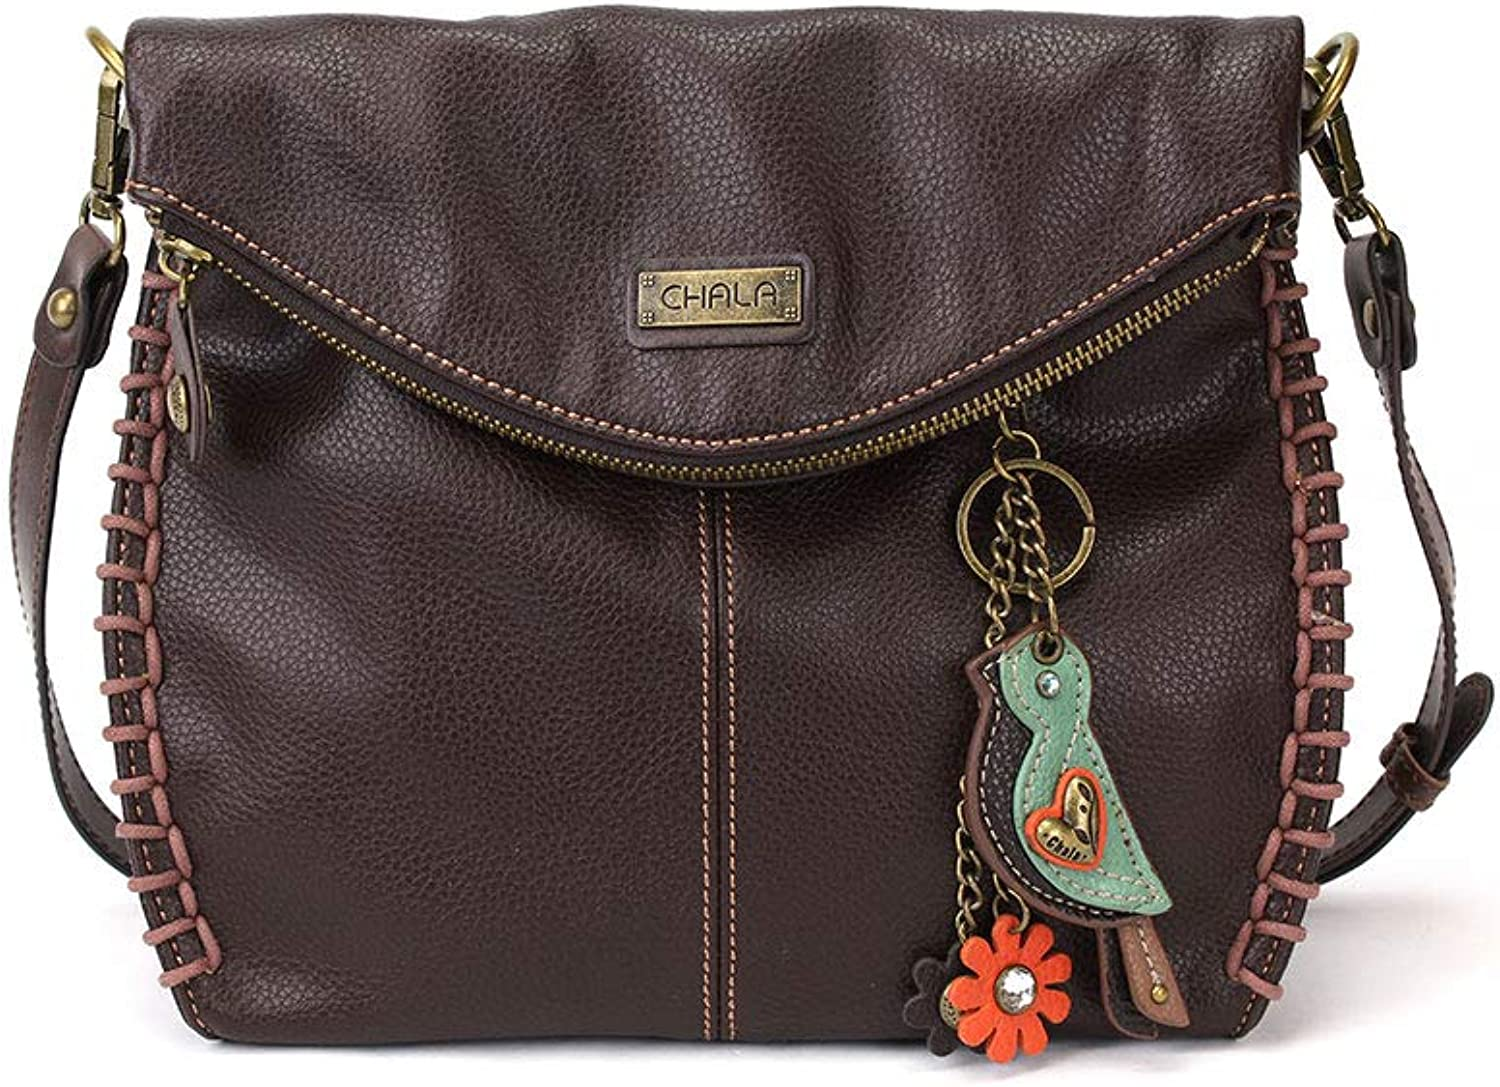 Chala Charming Crossbody Bag with Zipper Flap Top and Metal Chain  Dark Brown